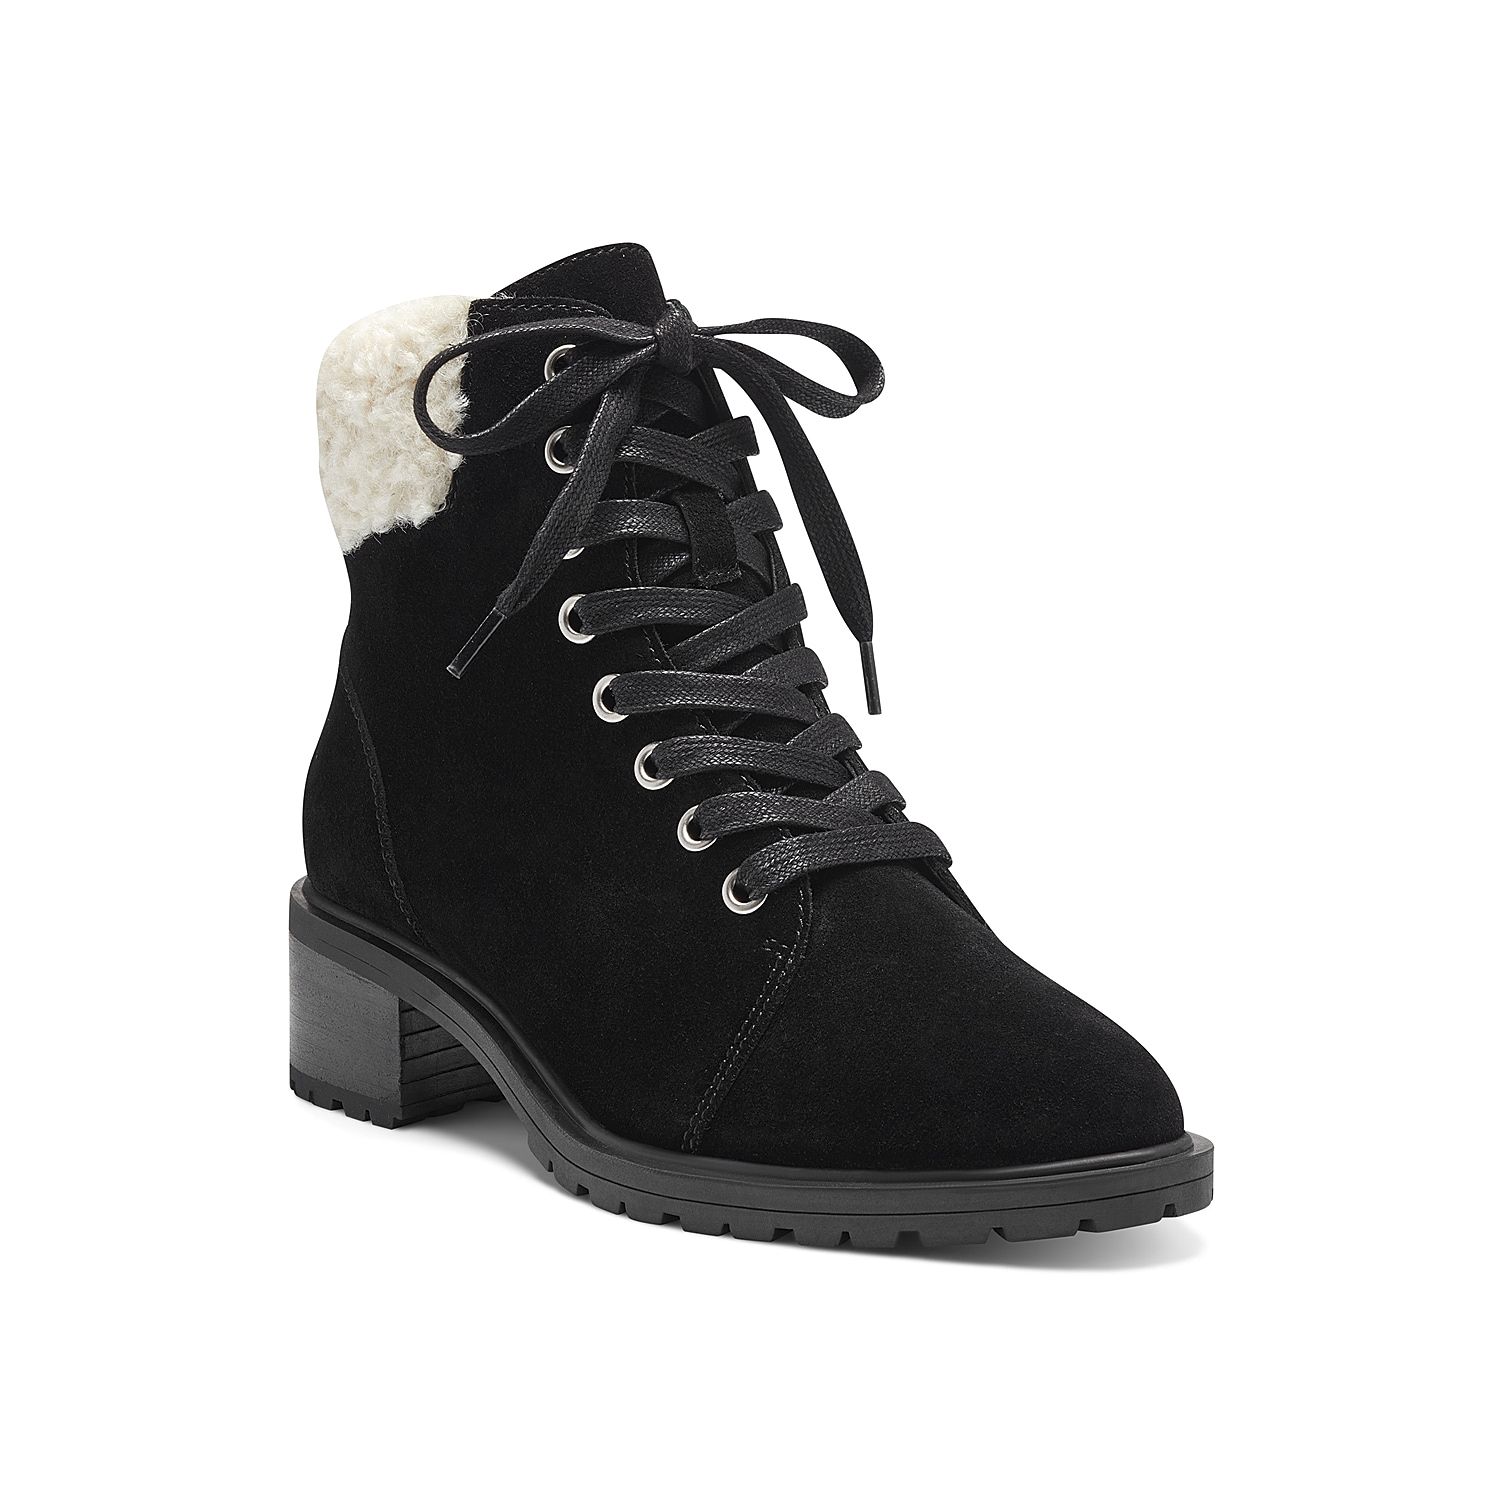 Kickstart cool weather style with the Jacenia bootie from Sole Society. This combat-inspired pair features a faux fur cuff and low block heel to complement anything from leggings to jeans.Click here for Boot Measuring Guide.